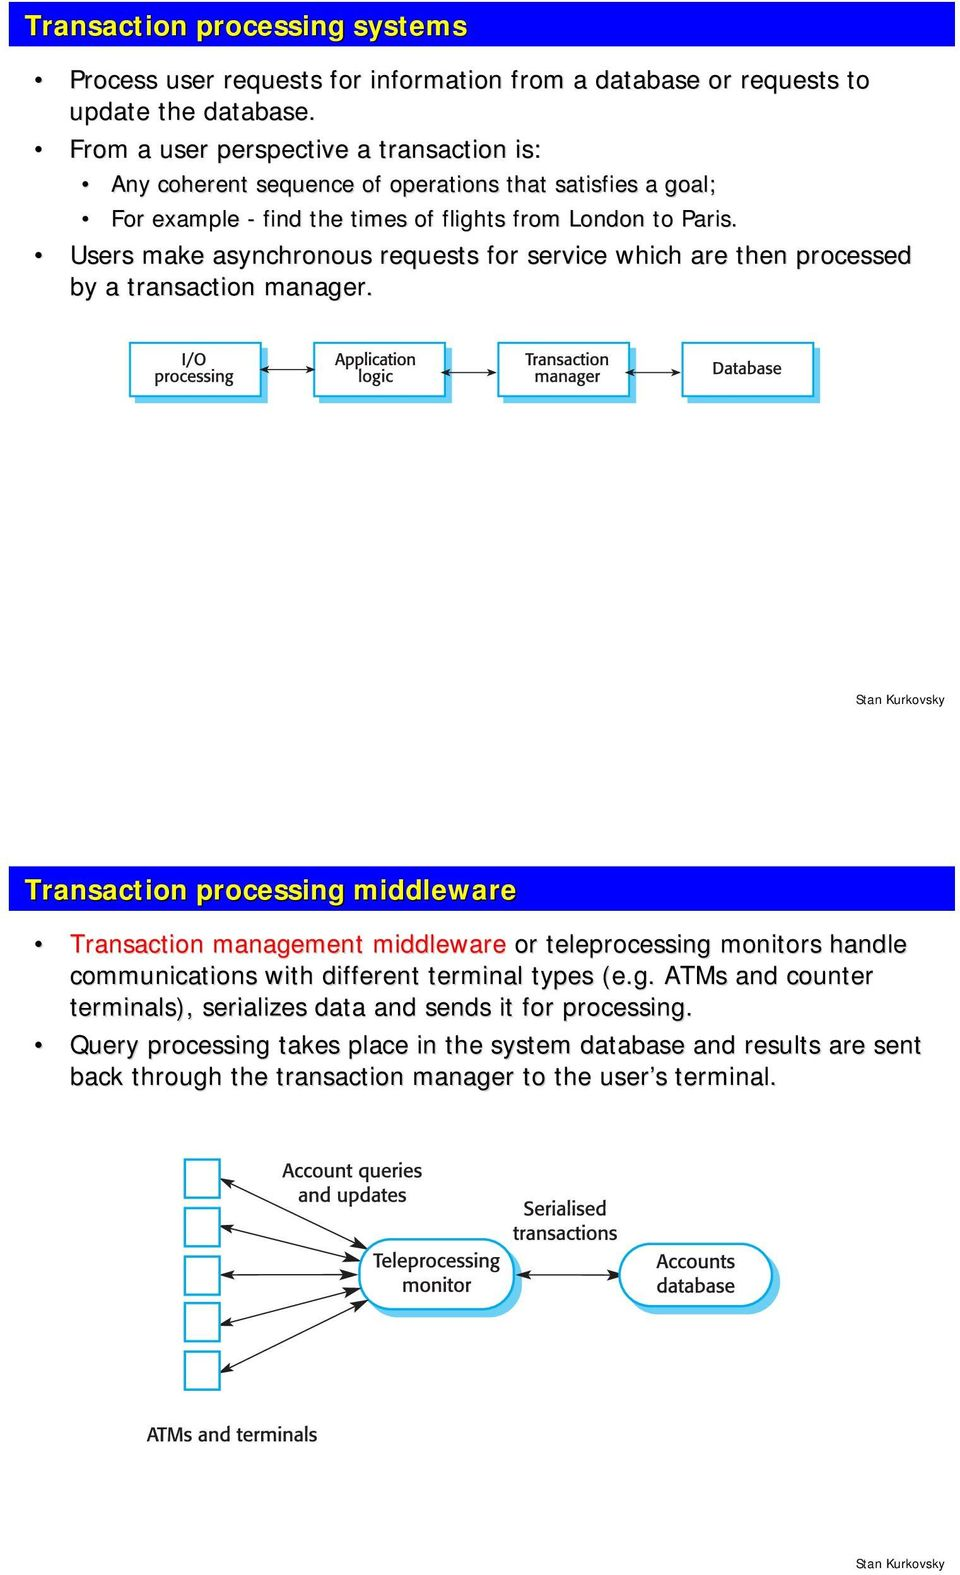 Users make asynchronous requests for service which are then processed by a transaction manager.